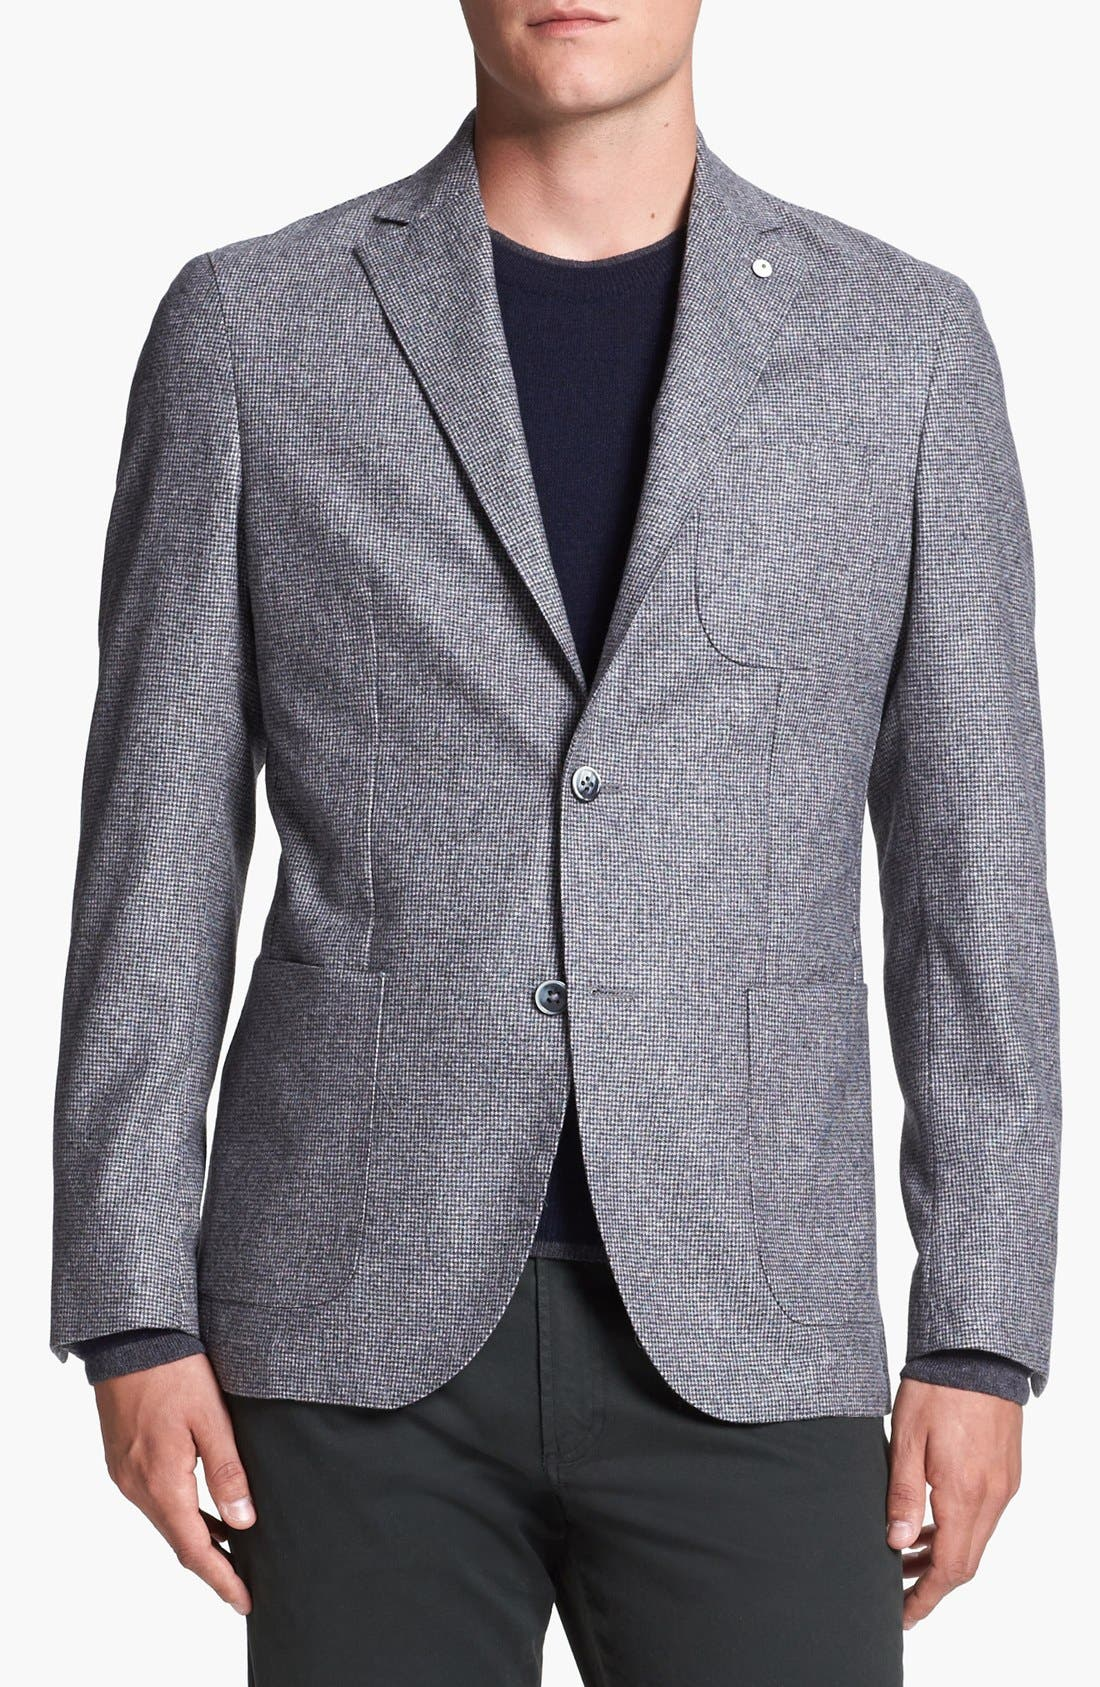 Alternate Image 1 Selected - Lubian Houndstooth Flannel Wool Sportcoat